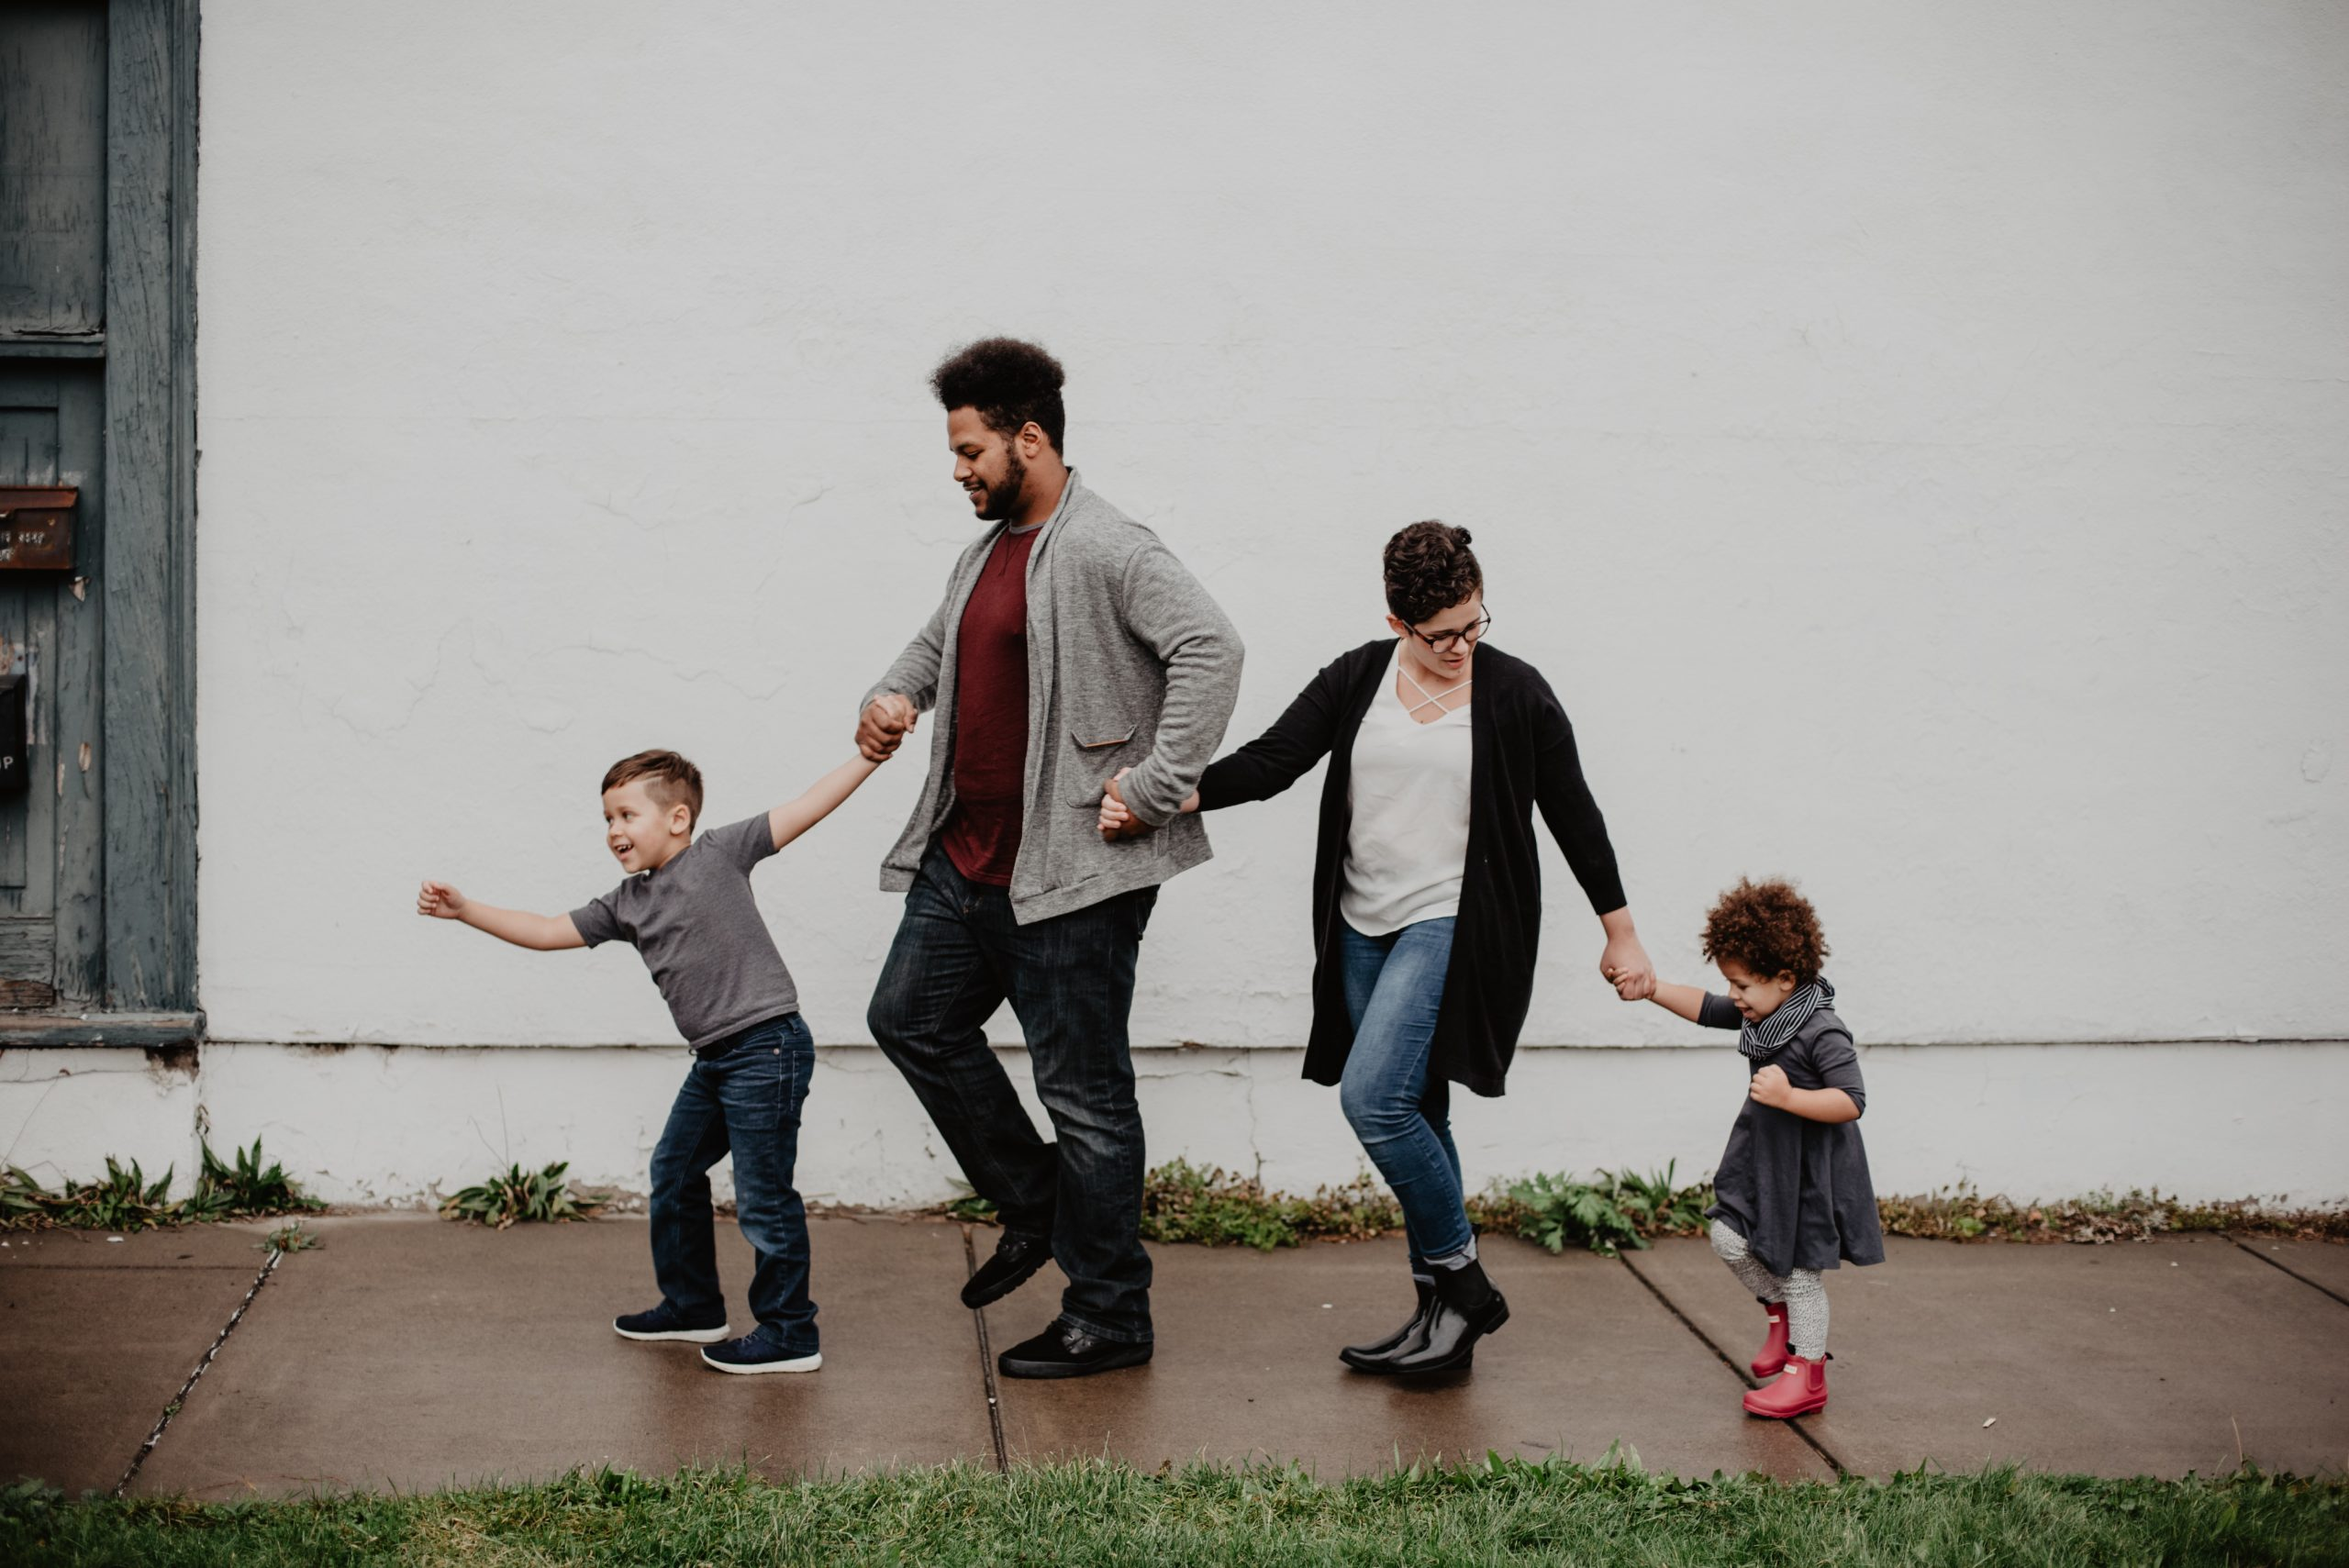 family-of-four-walking-at-the-street-2253879-scaled